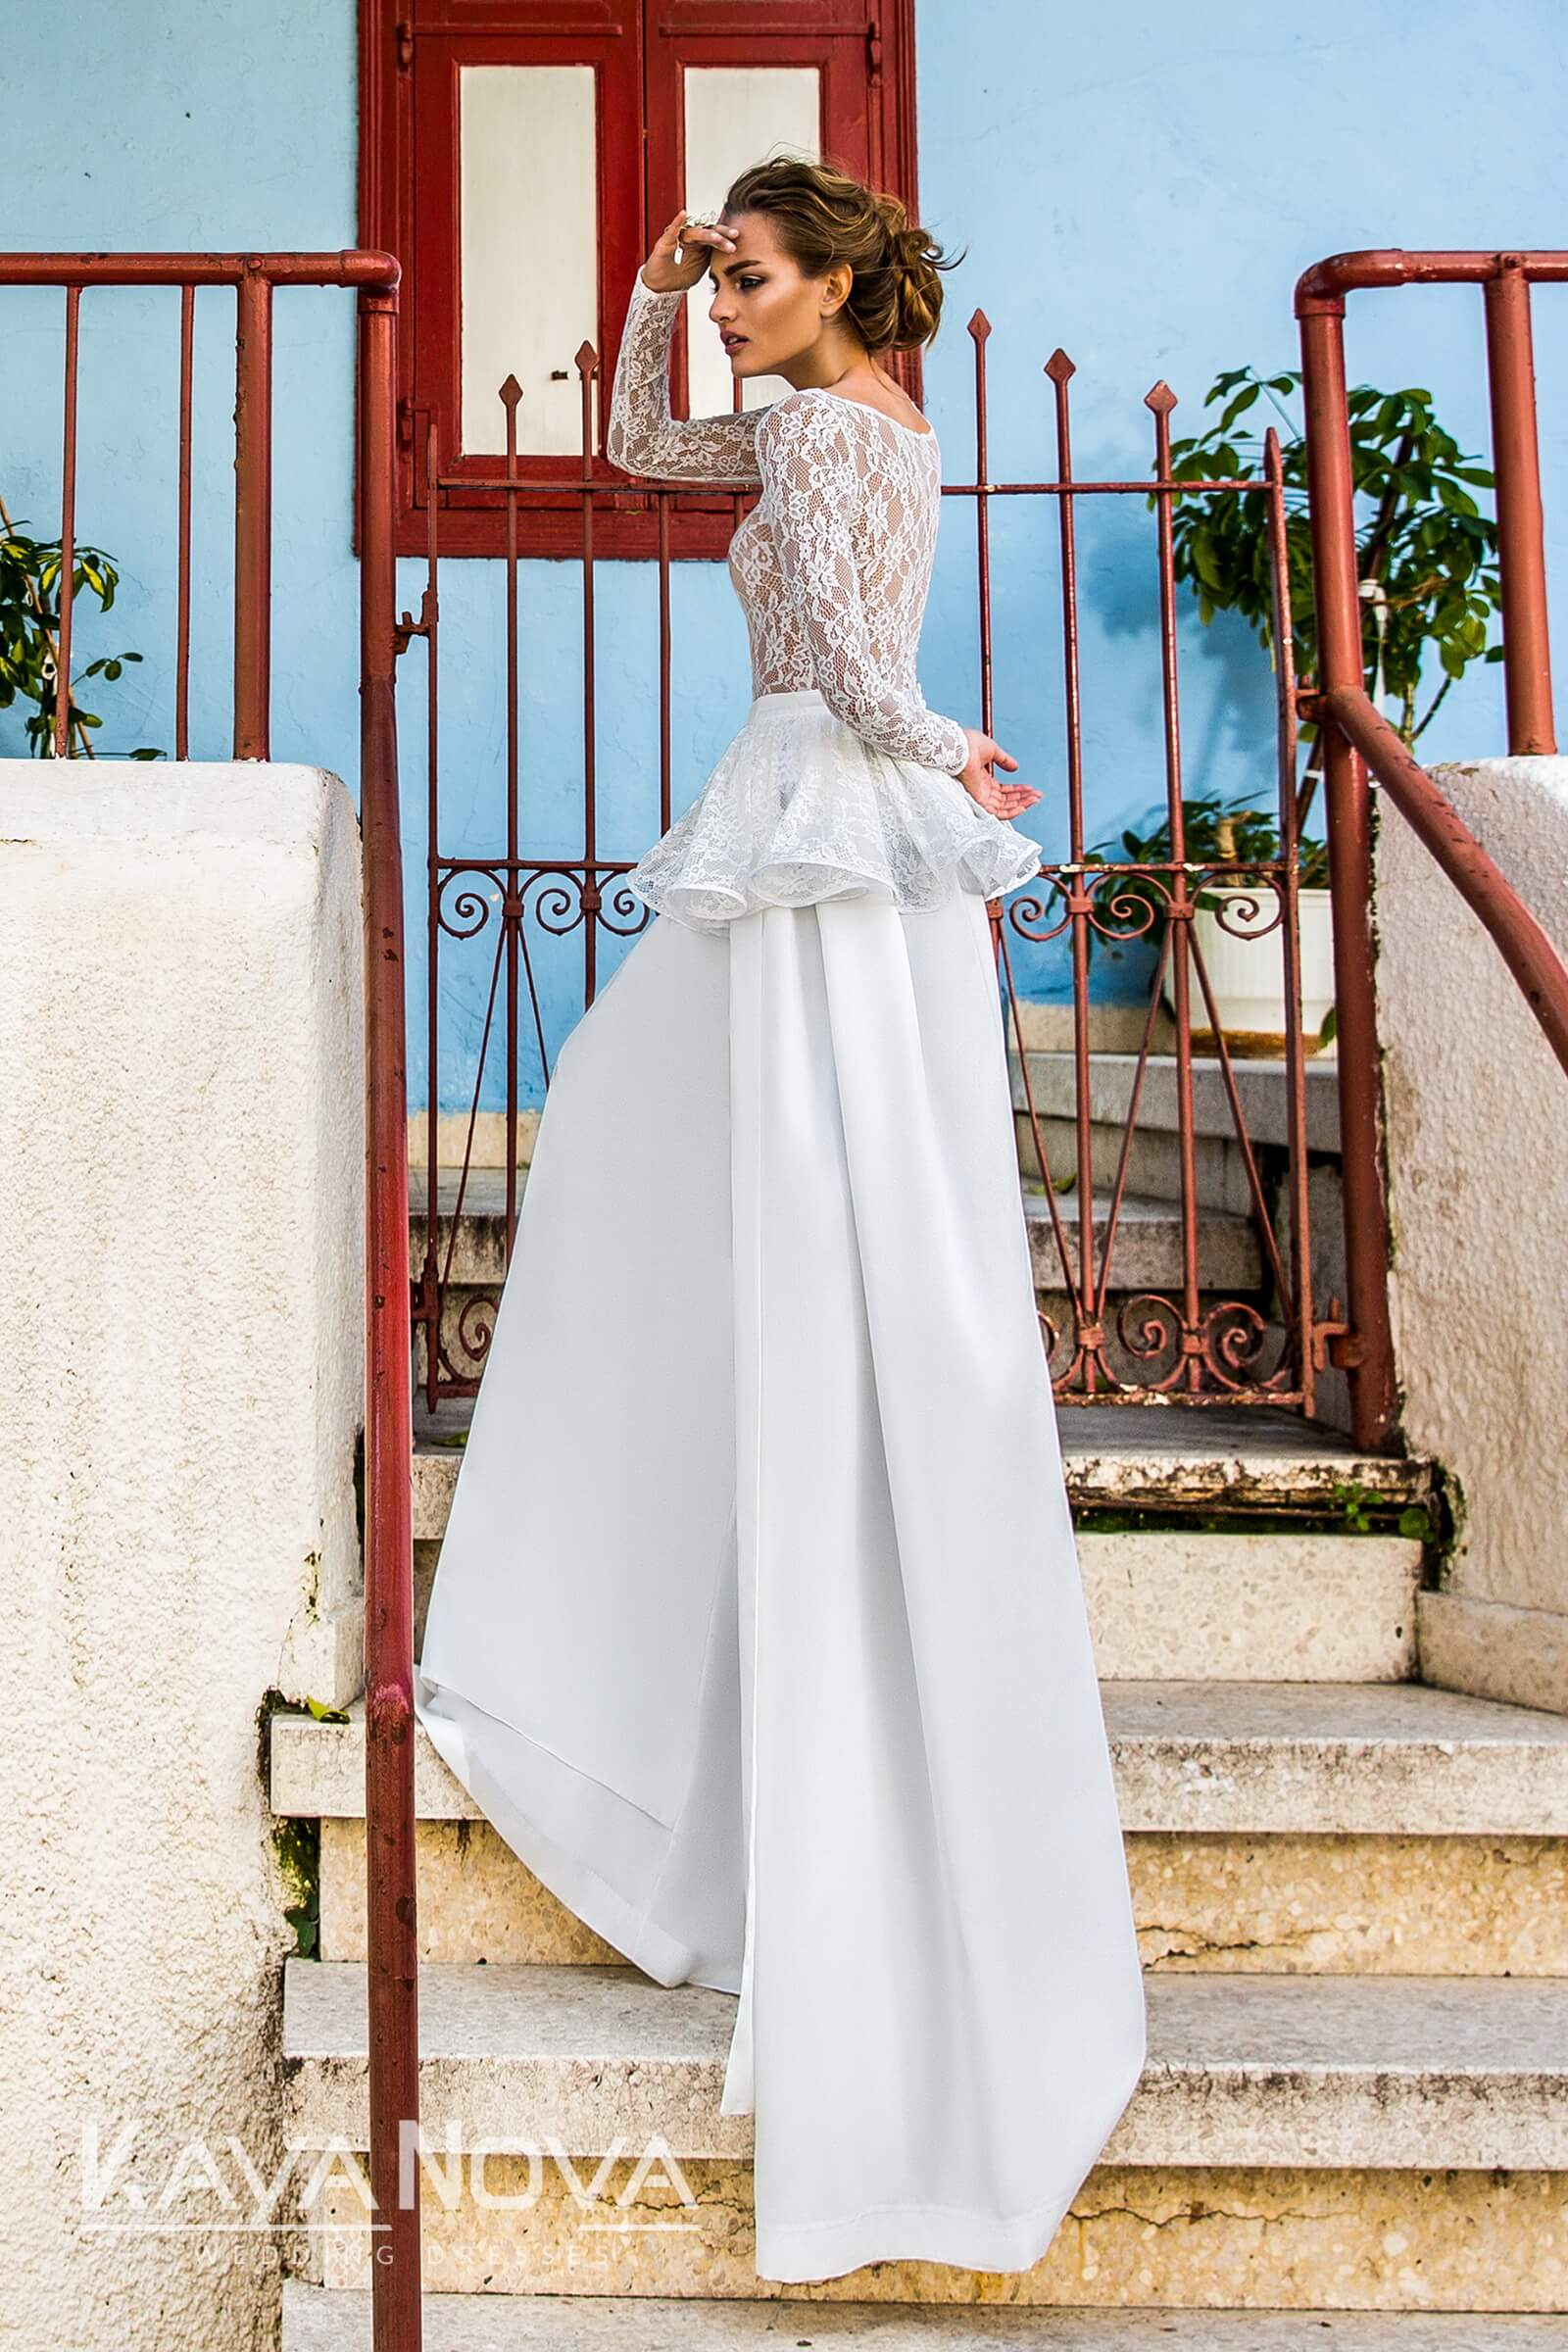 https://kayawedding.com/images/stories/virtuemart/product/Penelope 2_13.jpg